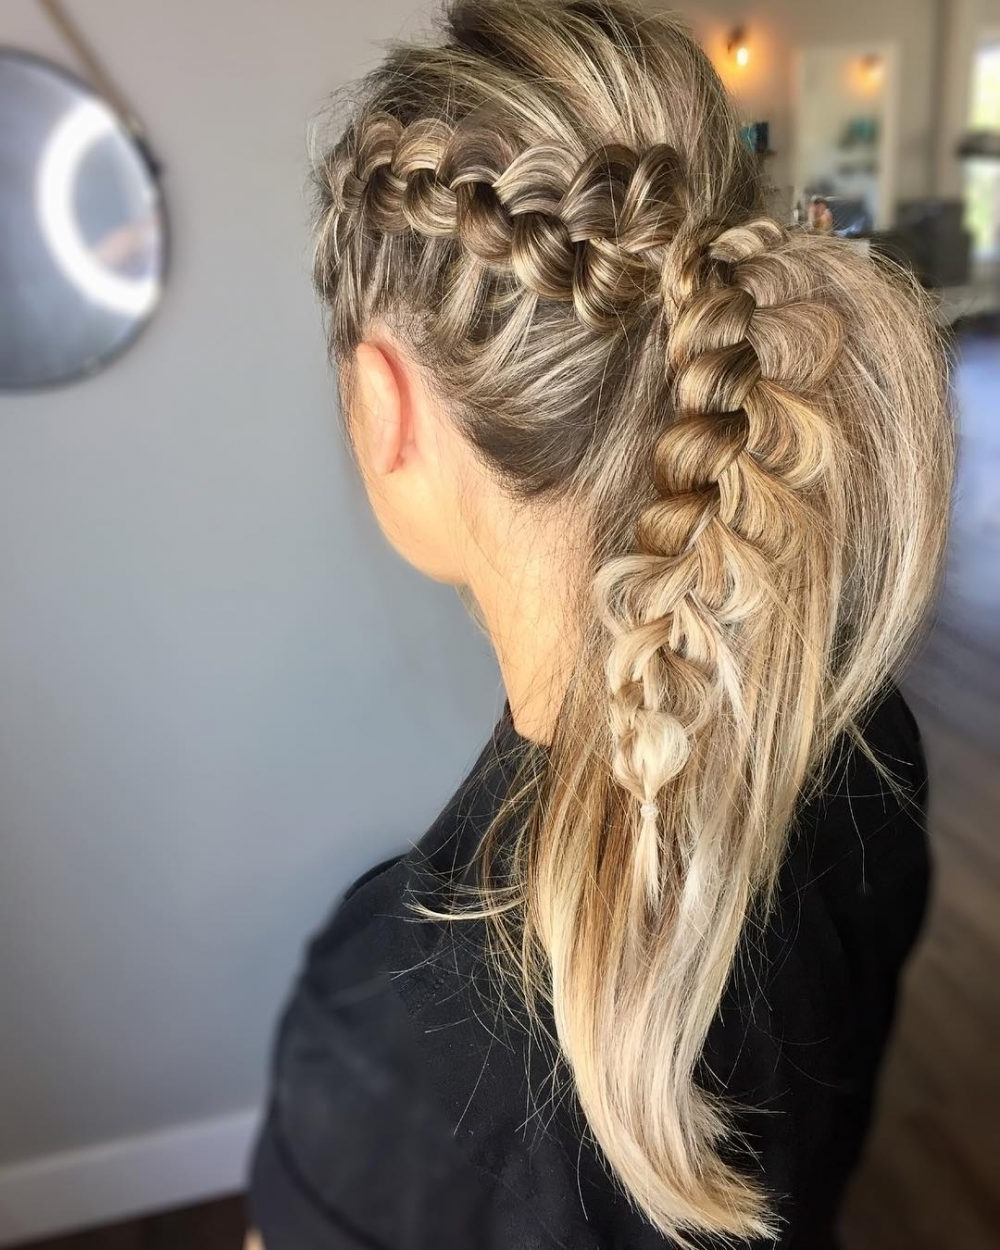 38 Ridiculously Cute Hairstyles For Long Hair (Popular In 2018) Inside Most Popular Bouffant And Braid Ponytail Hairstyles (View 4 of 20)